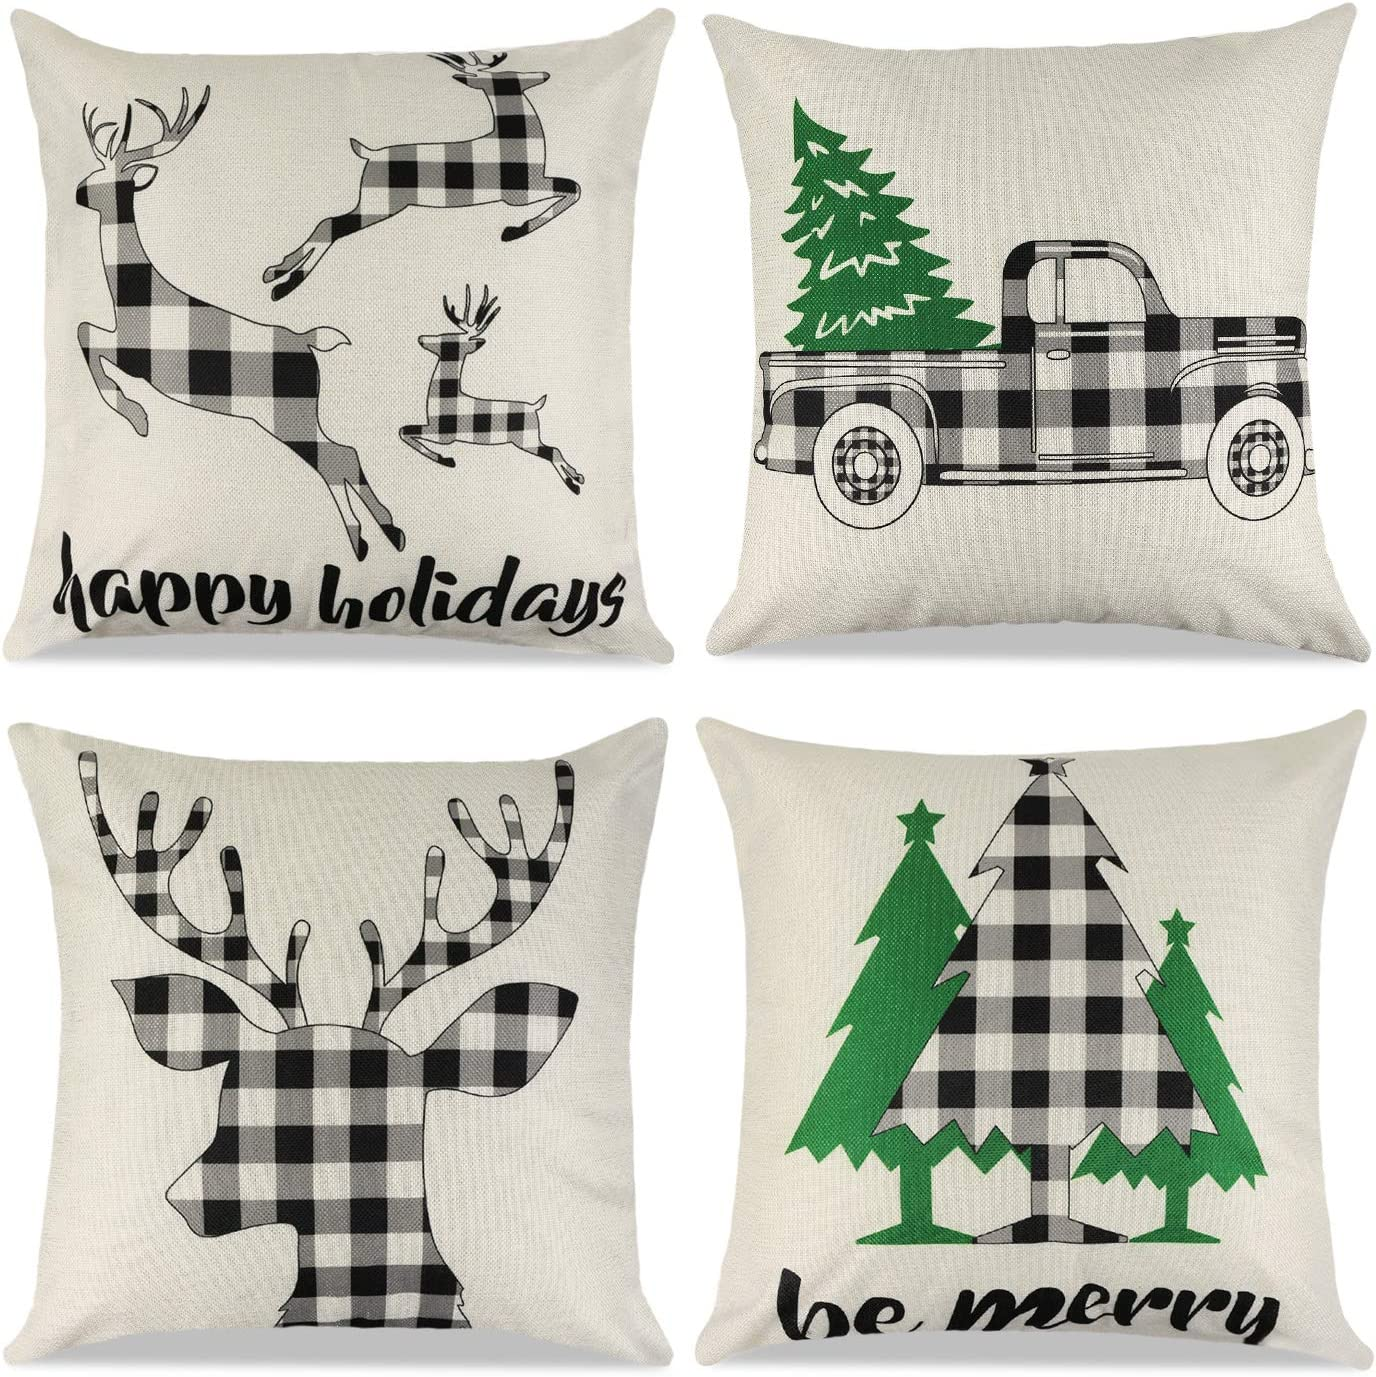 Cokoka Christmas Pillow Covers 18x18 inch Set of 4- Black and White Buffalo Check Plaid Linen Xmas Throw Pillow Covers Pillowcases for Holiday Car Sofa Cushion Couch Farmhouse Home Decor